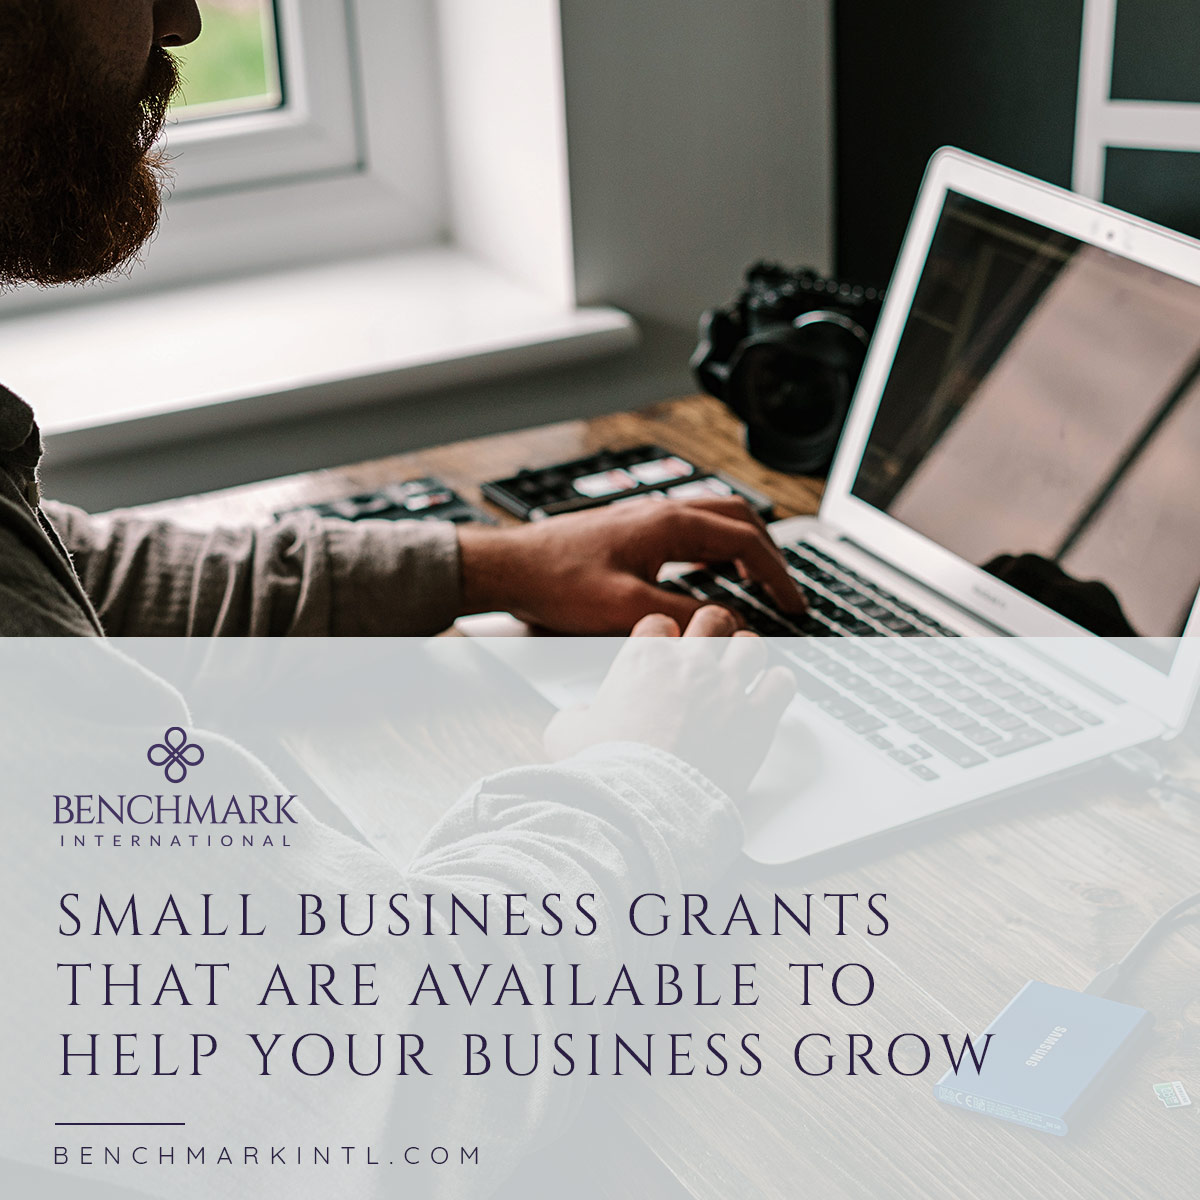 Small_Business_Grants_That_Are_Available_To_Help_Your_Business_Grow_Social(2)-1